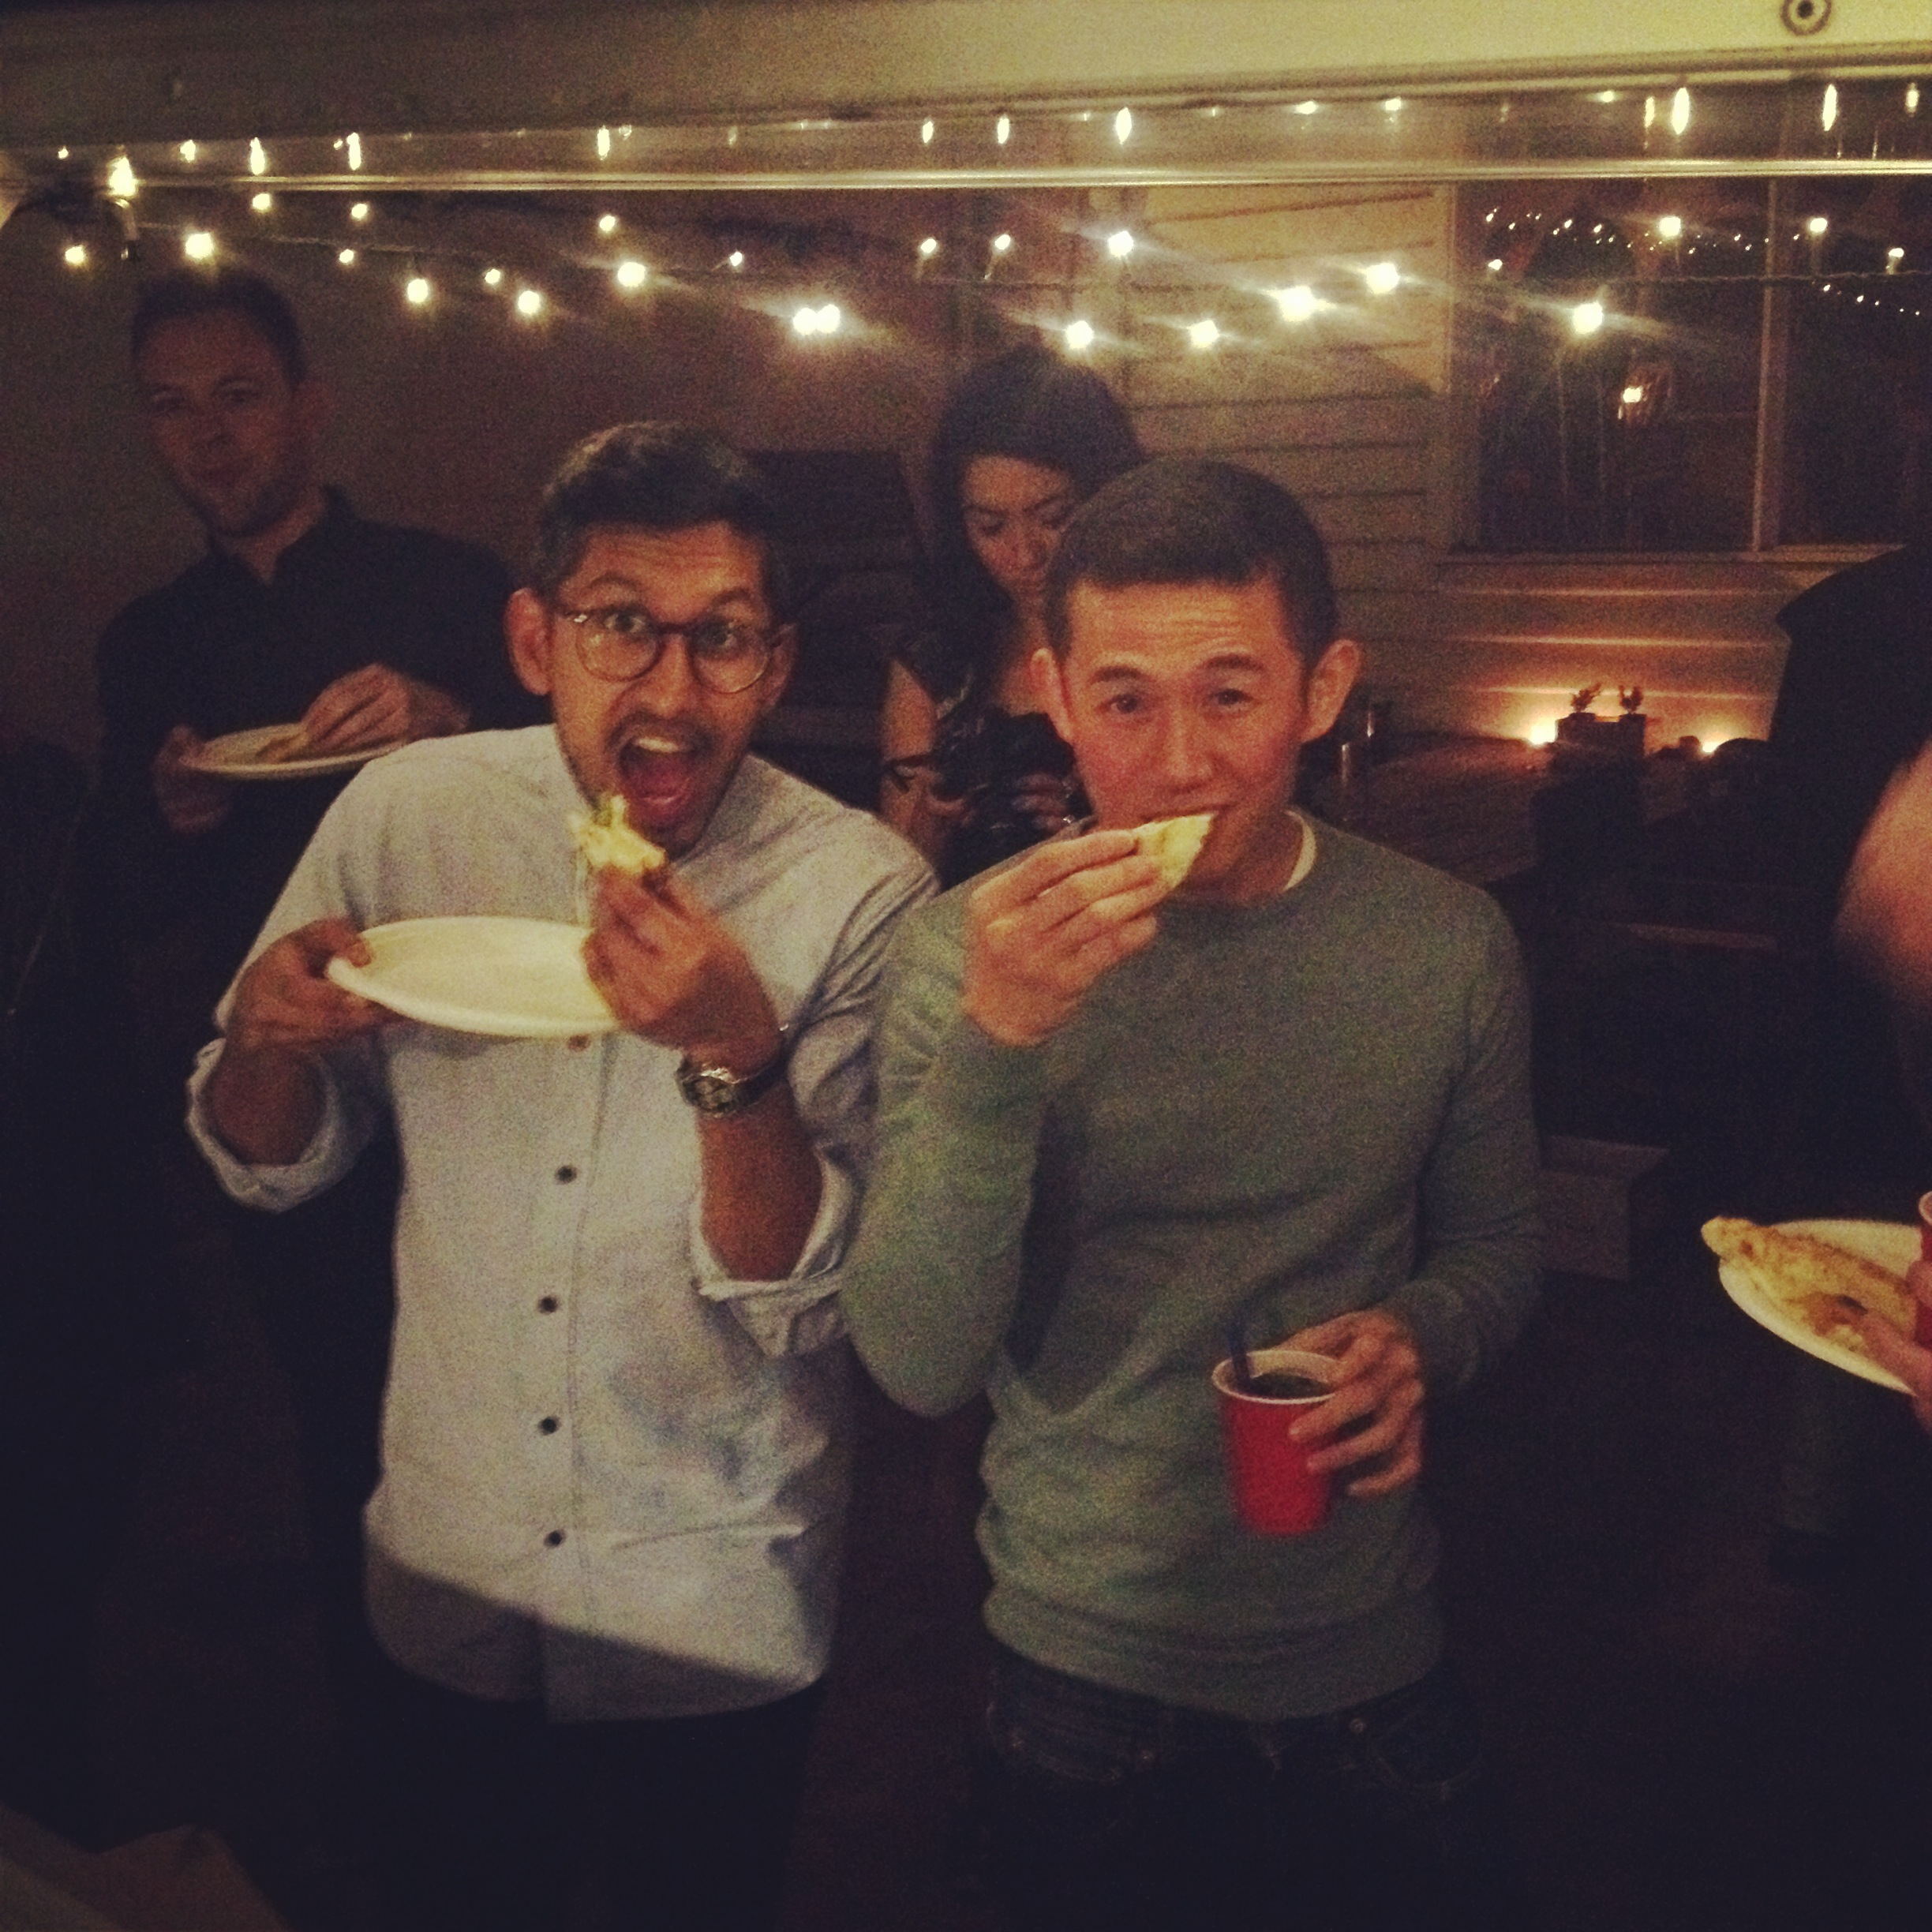 """""""Thanks guys, amazing set up and pizza was great. Compliments are still flowing through. So tasty!"""" Tom Maddick"""